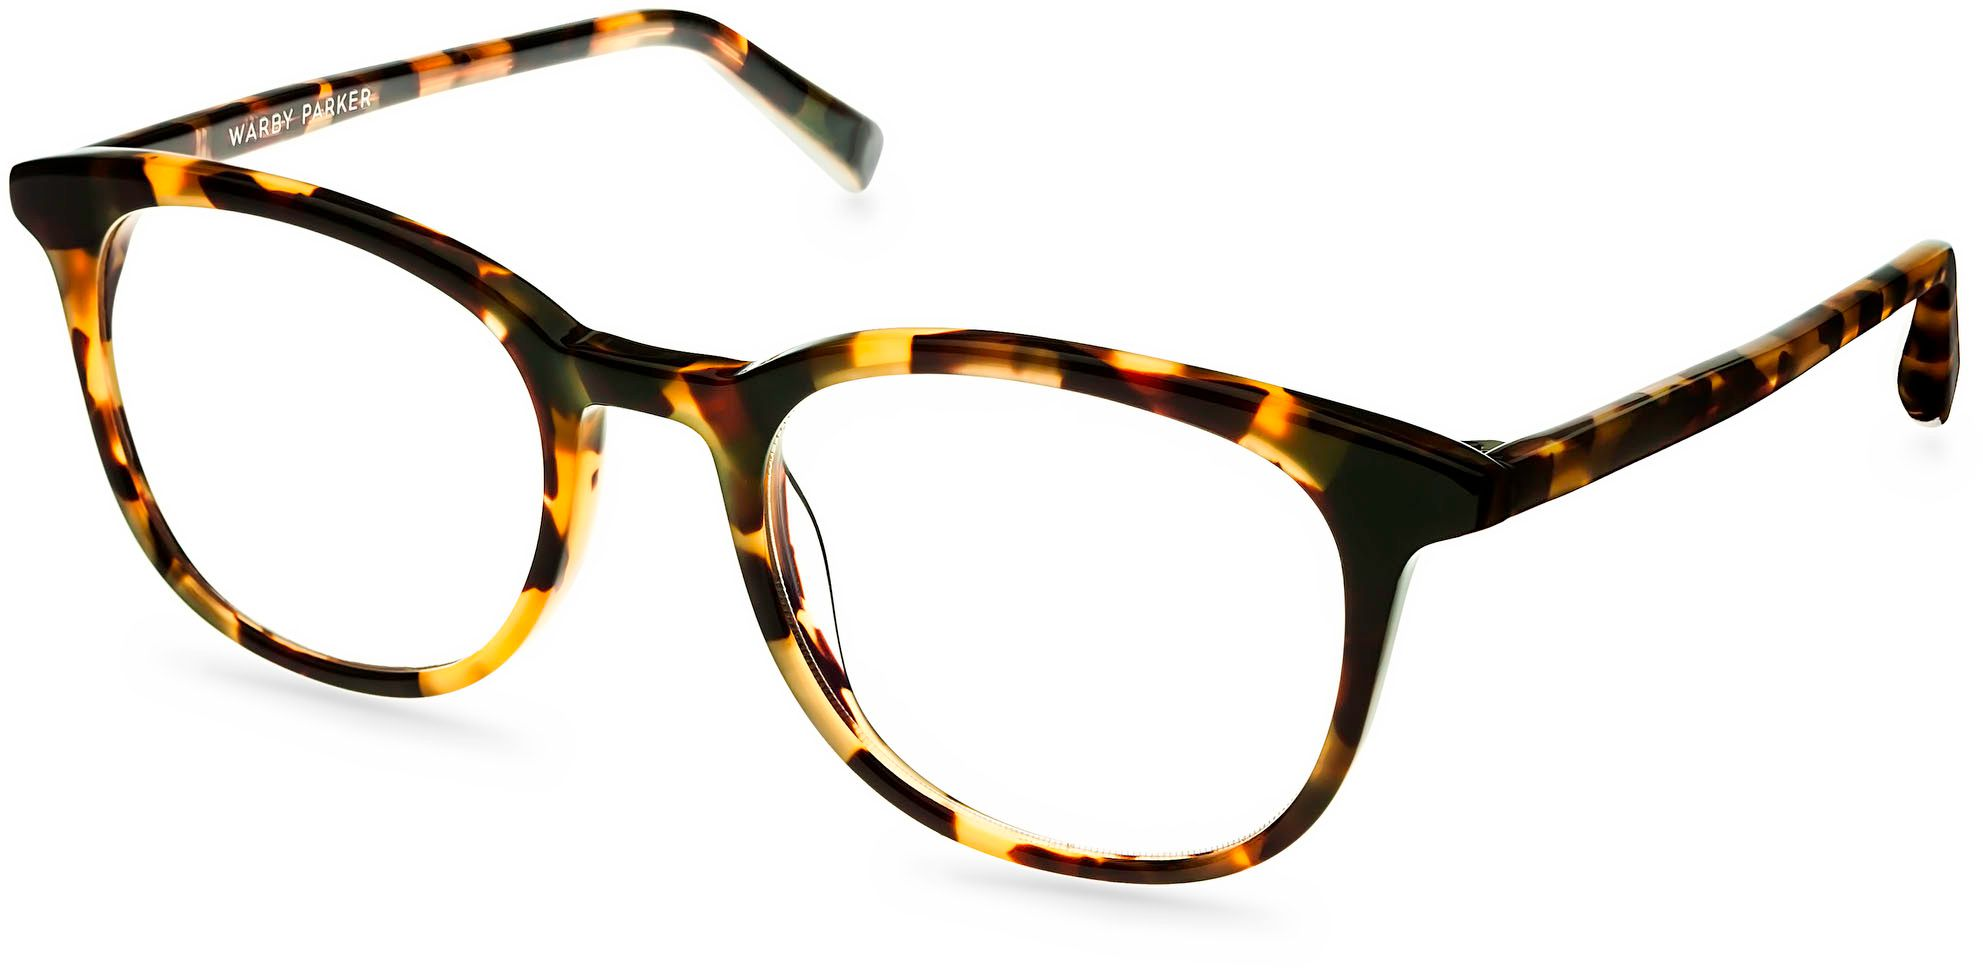 Durand Eyeglasses in Woodland Tortoise for Women | Warby Parker